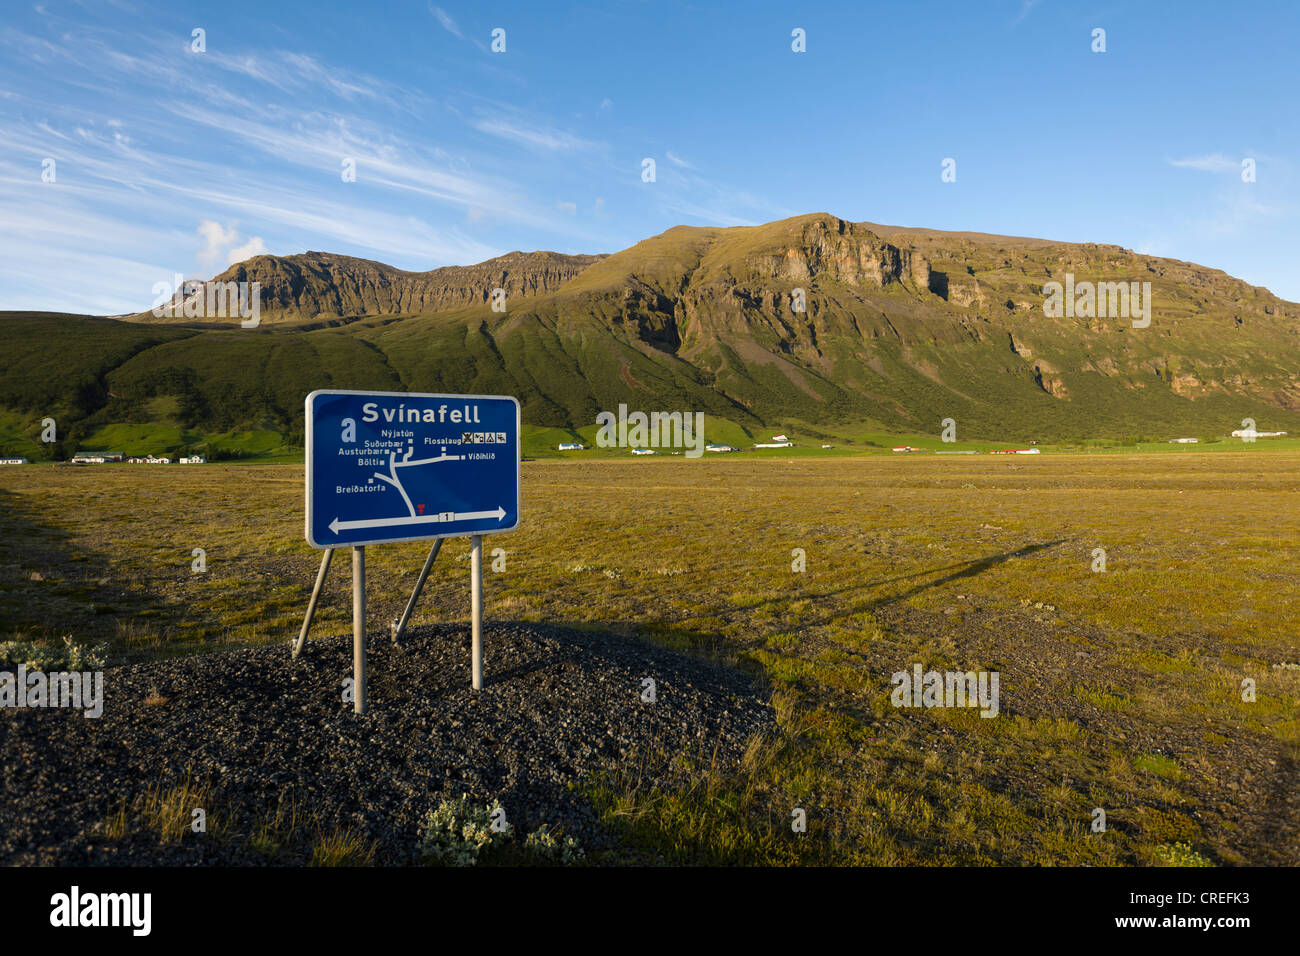 Sign for regional orientation, Svinafell, Iceland, Northern Europe, Europe - Stock Image